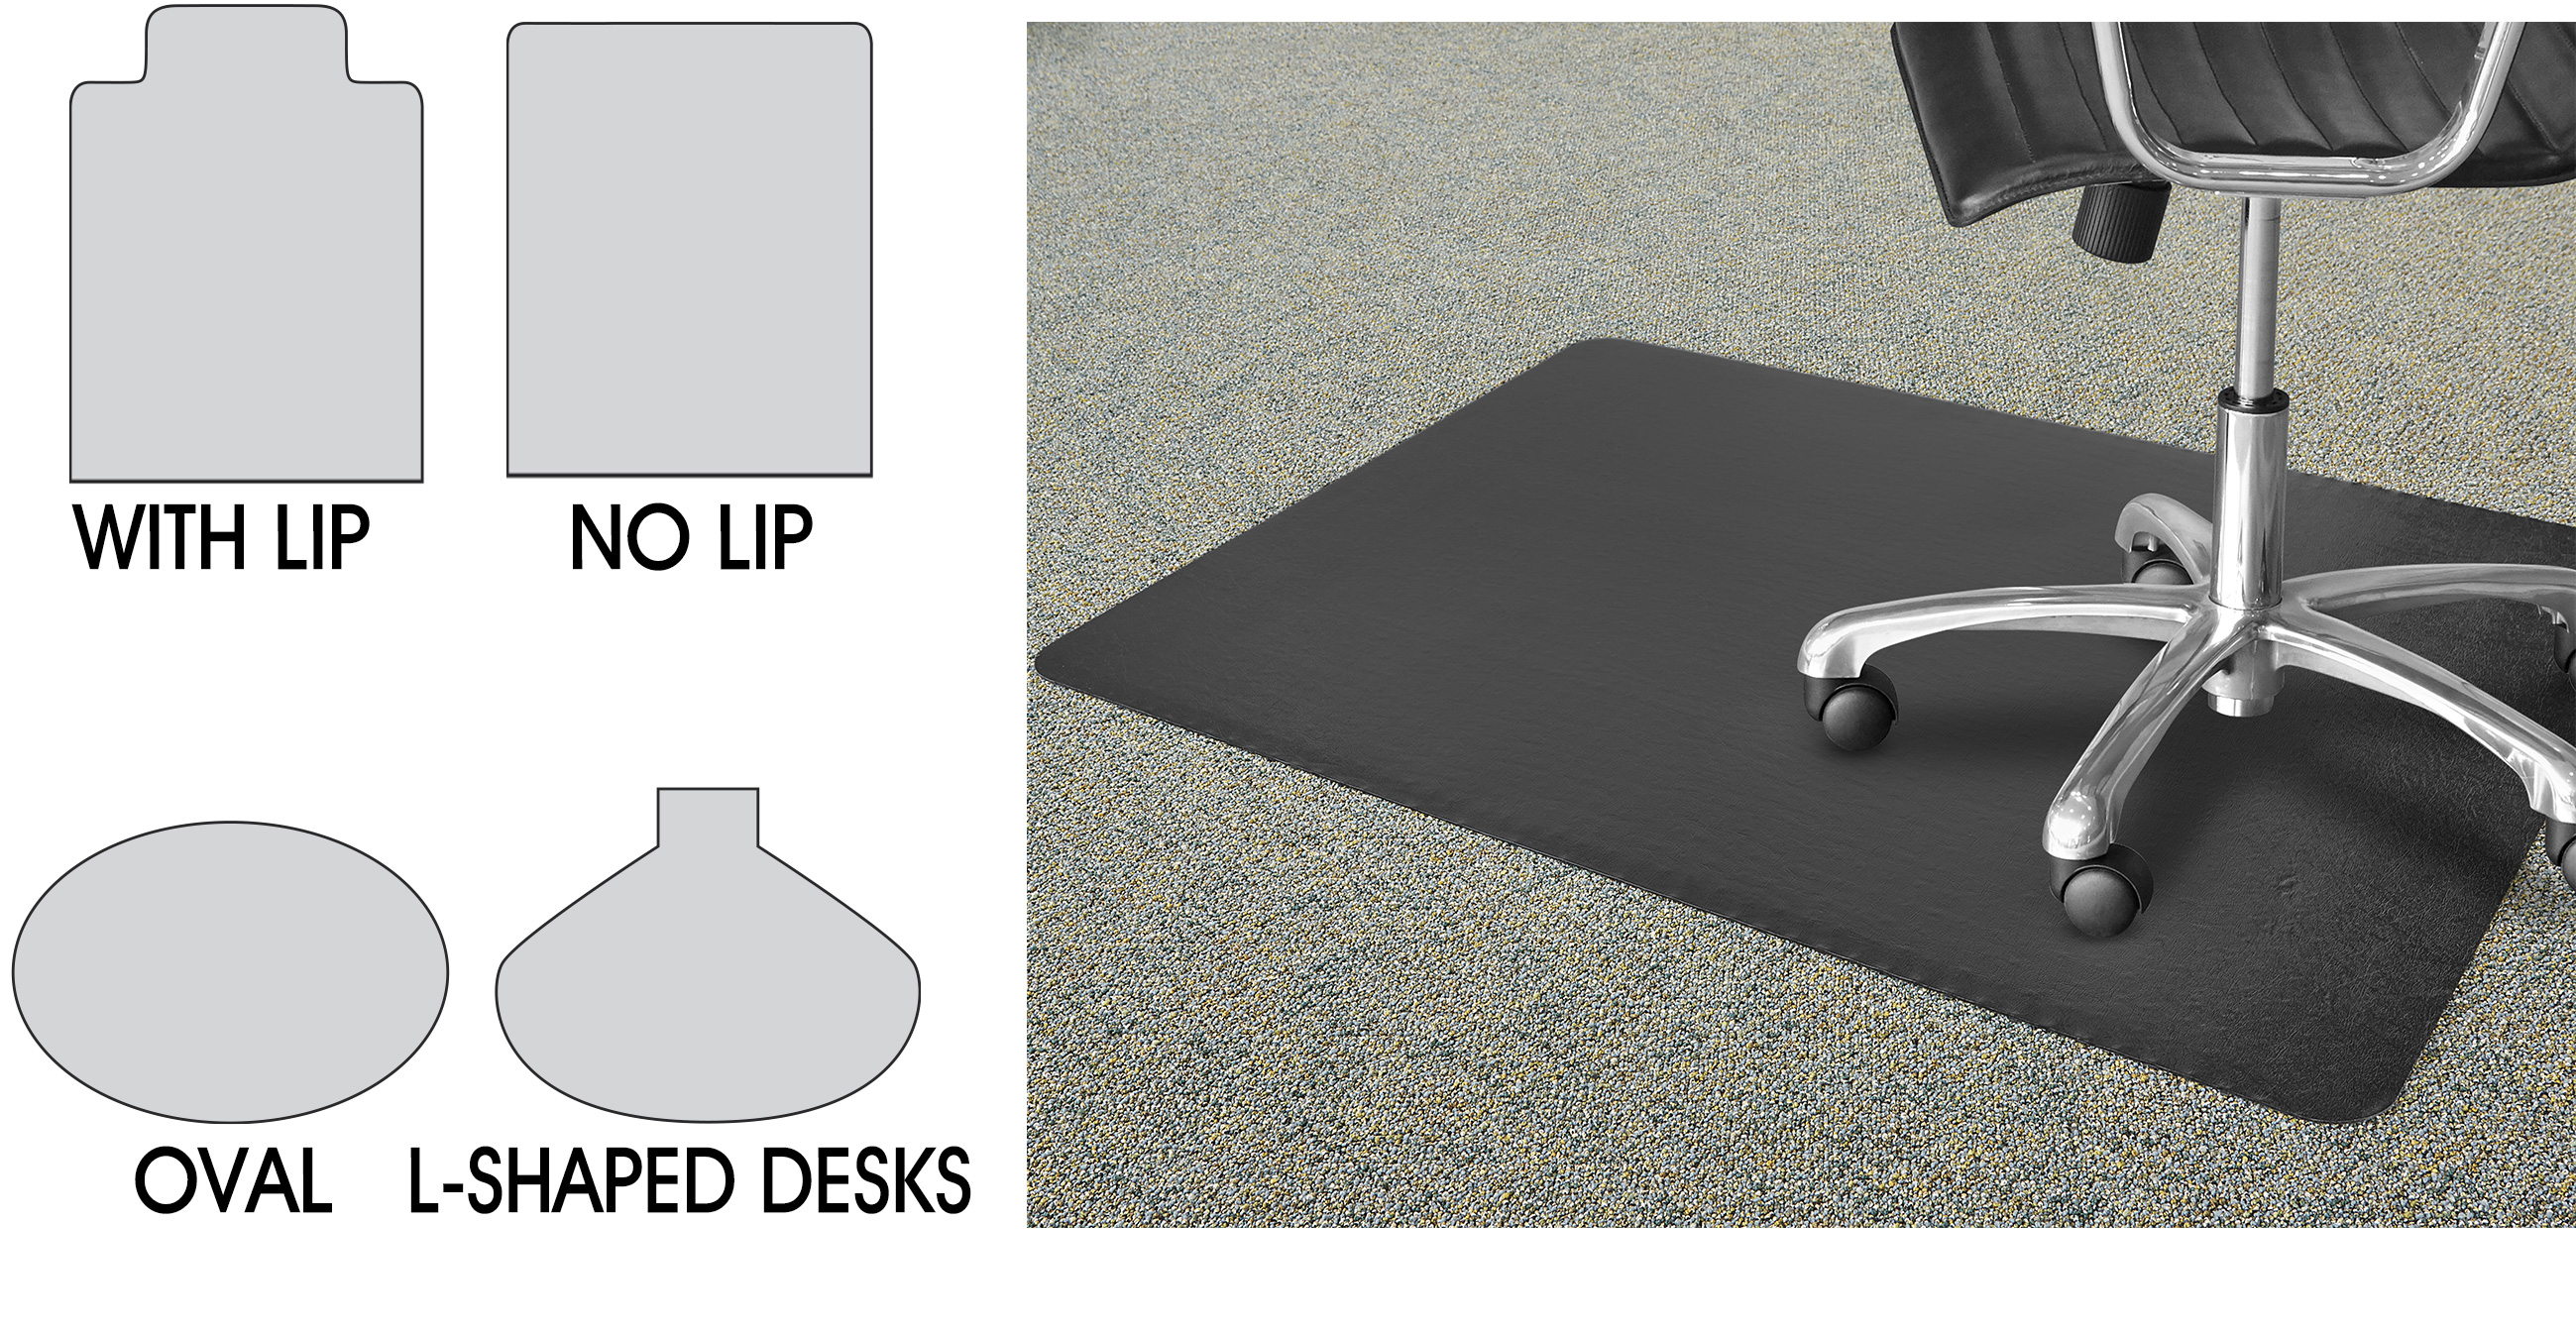 Genial Chair Mats, Chair Mats For Carpet, Office Chair Mats In ...